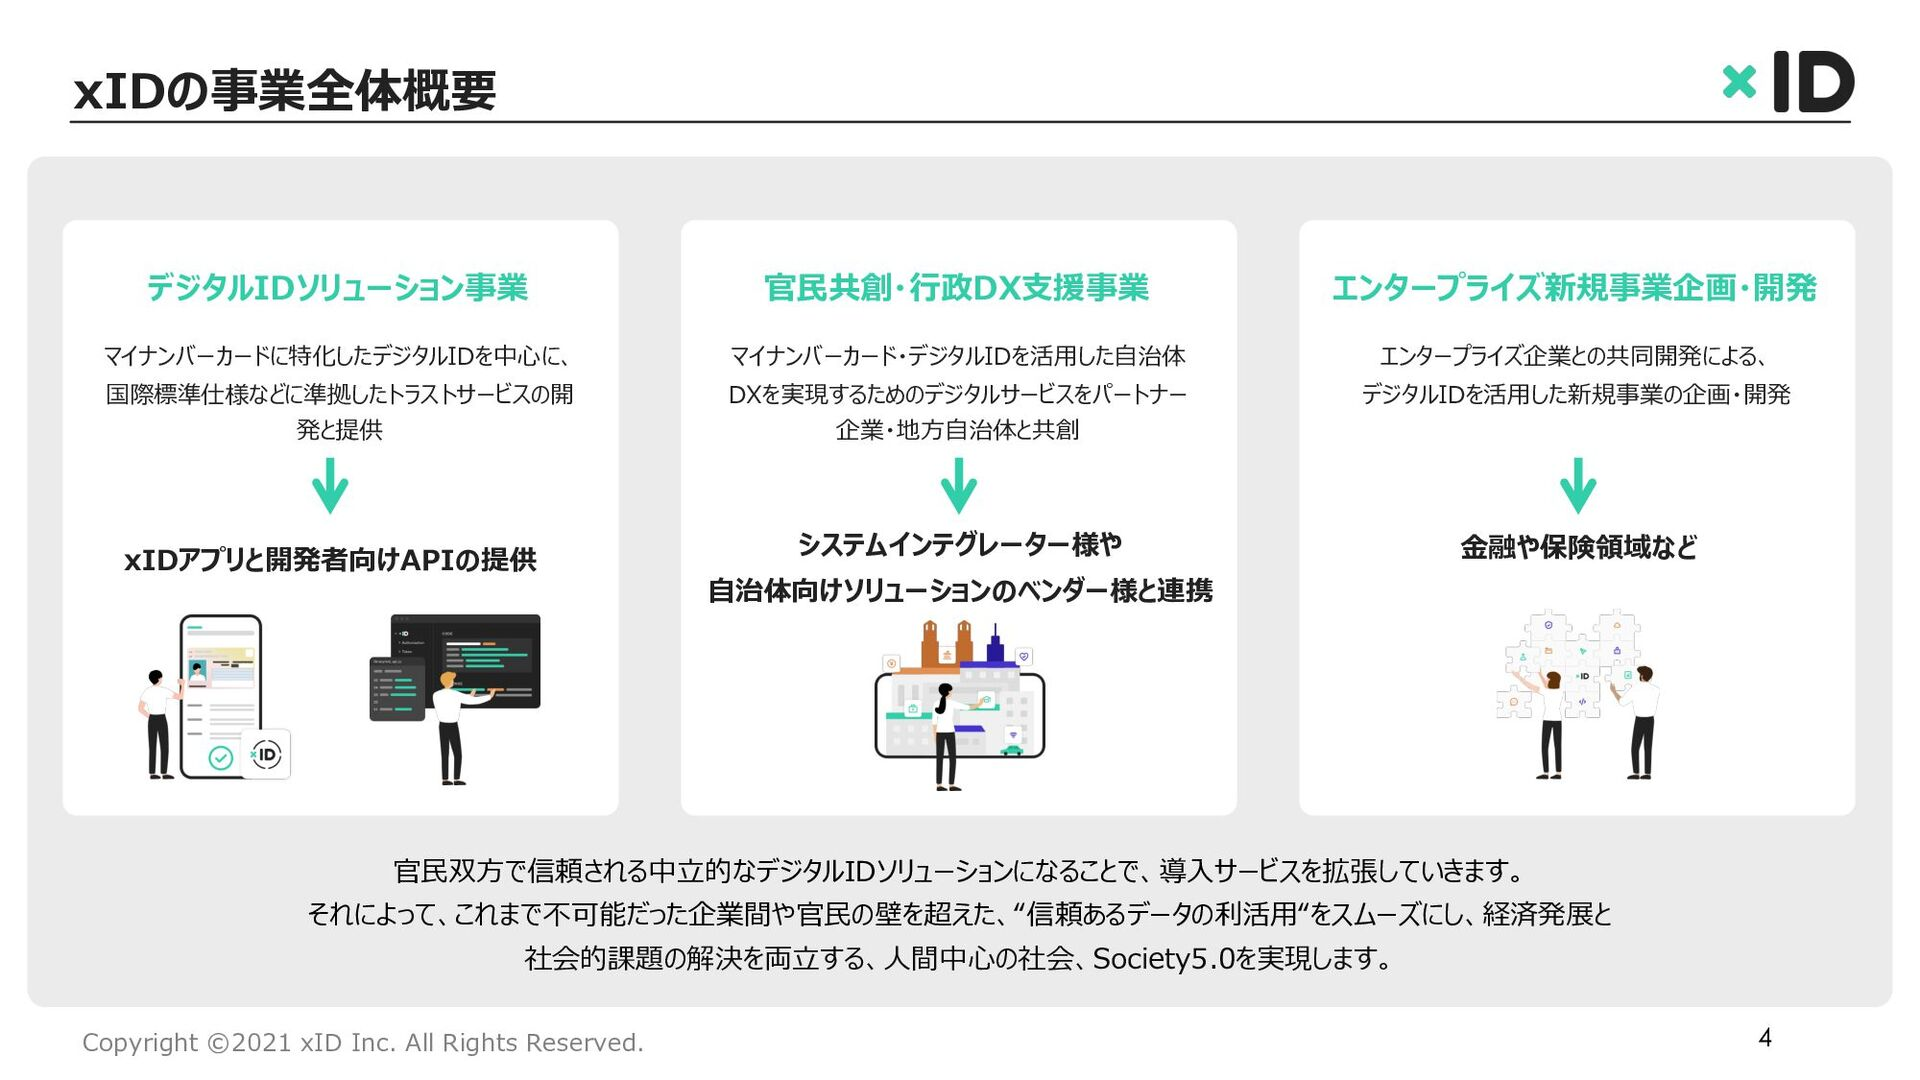 Copyright ©2021 xID Inc. All Rights Reserved. 私...